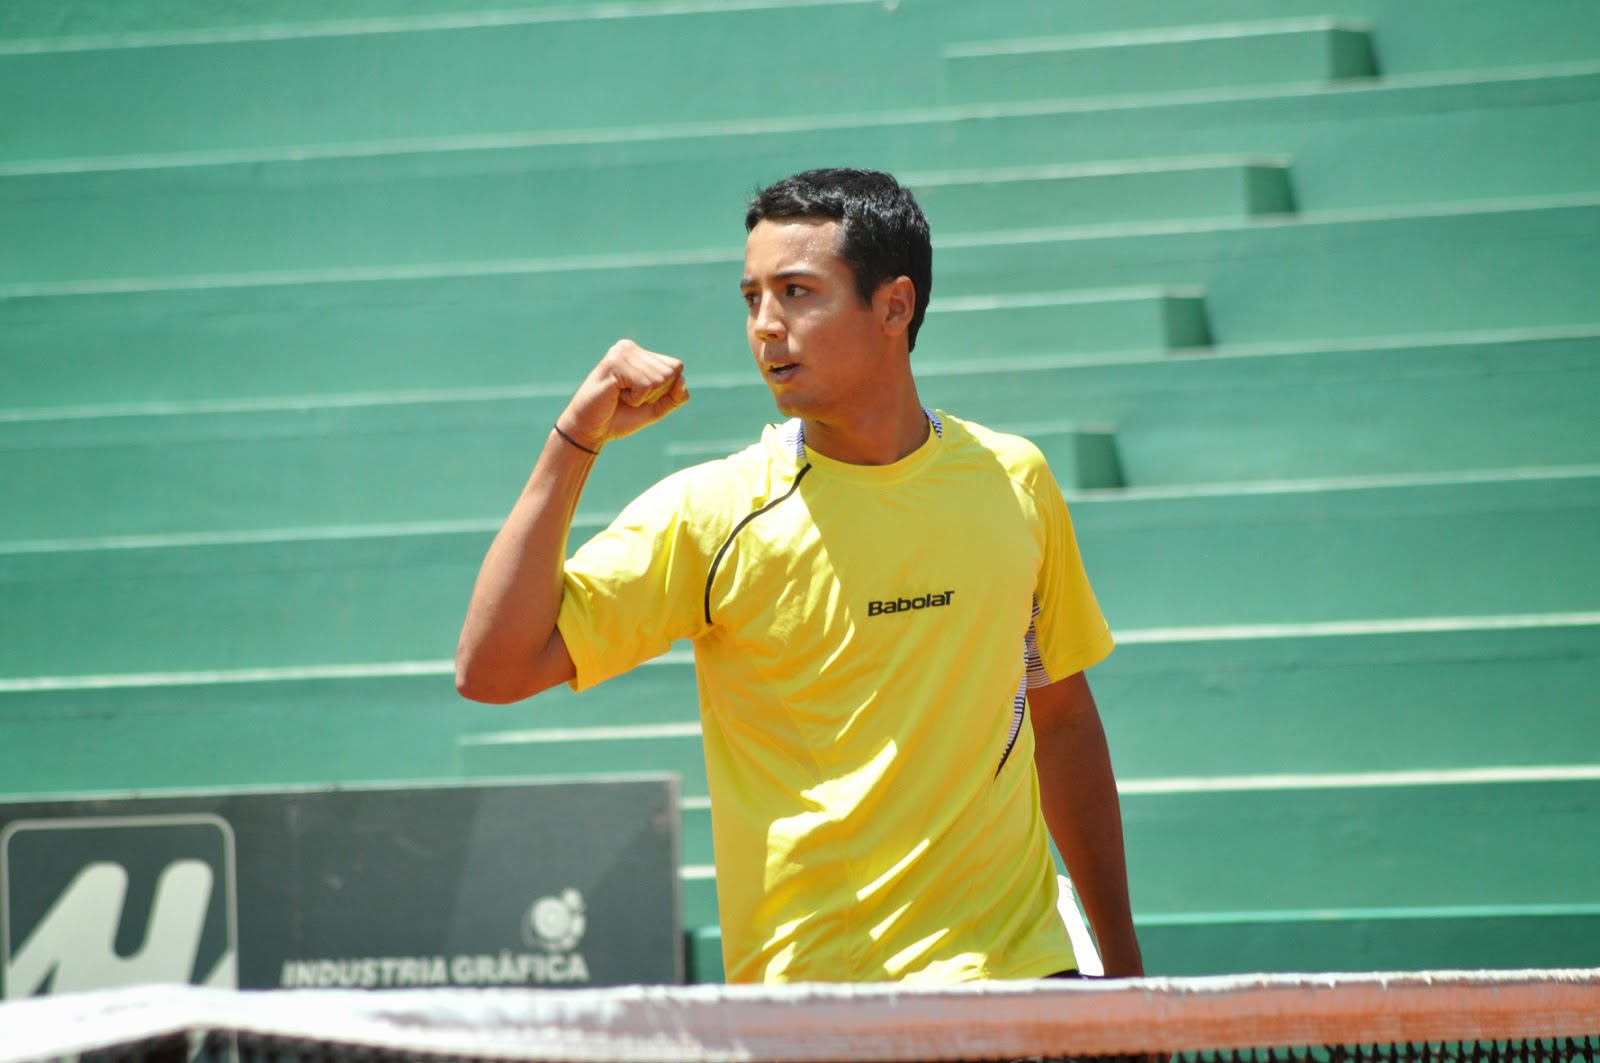 hugo dellien - photo #26